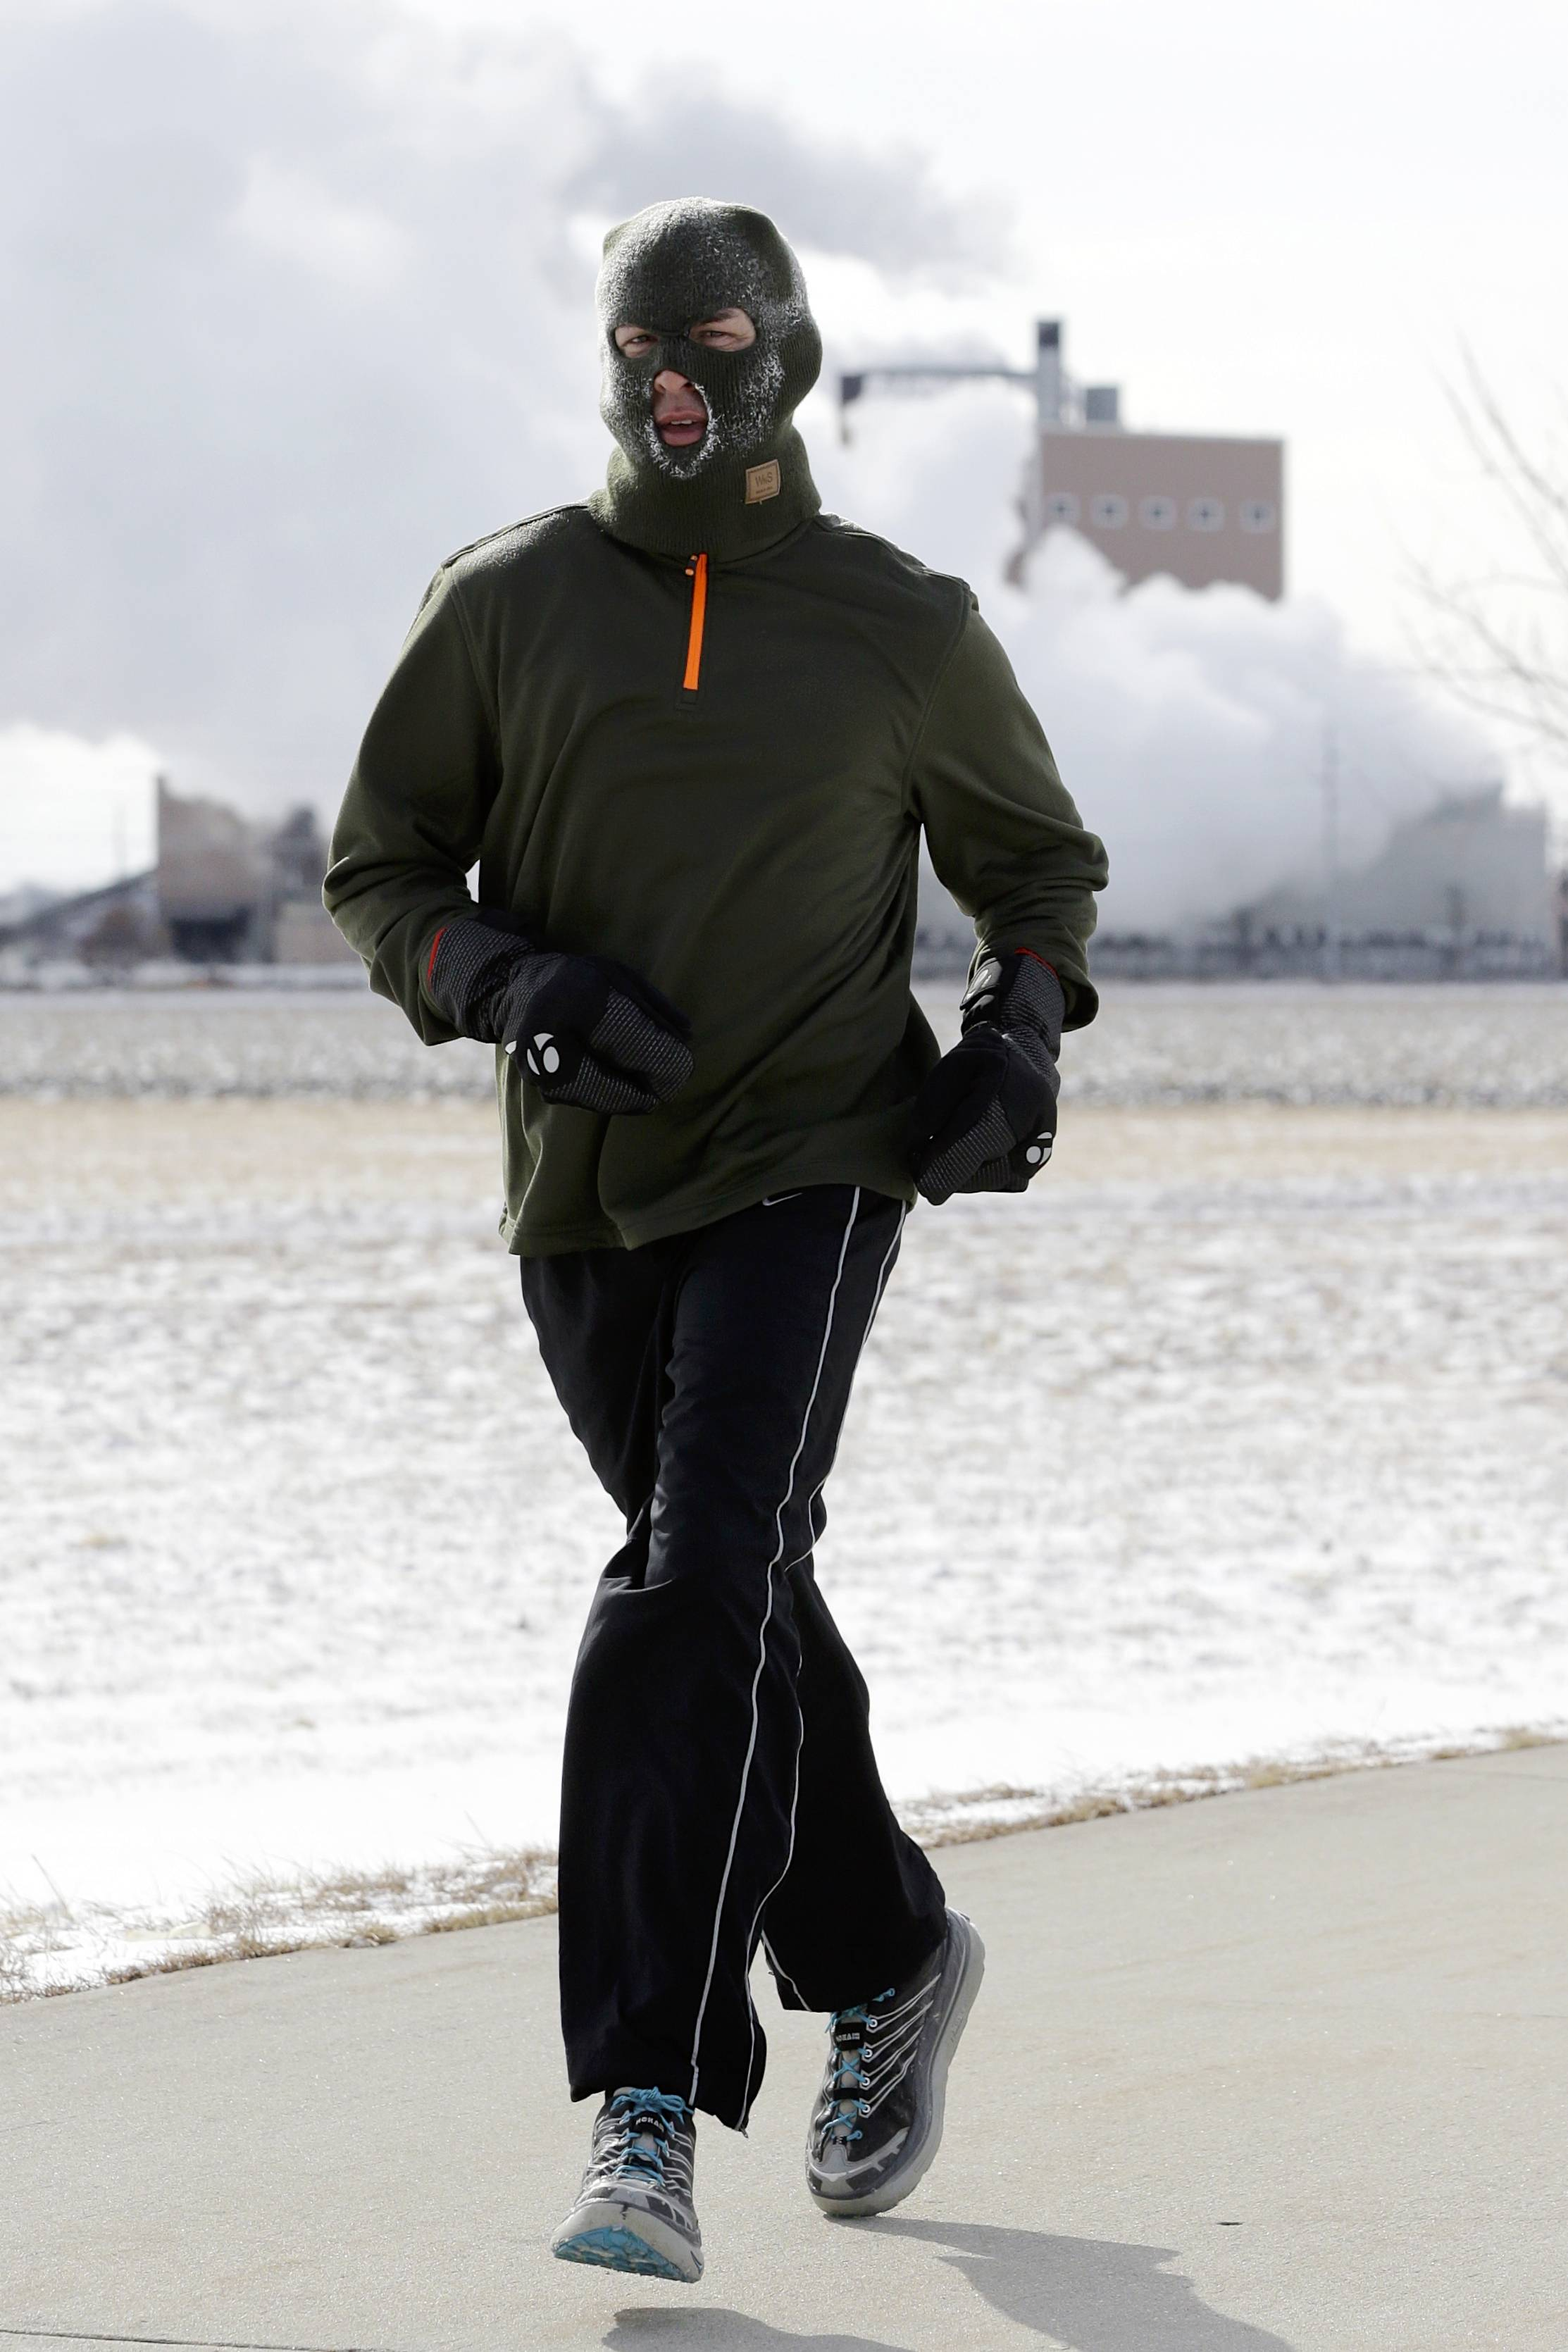 A man jogs in freezing temperatures on a path in Fremont, Neb., Thursday, Feb. 6, 2014.